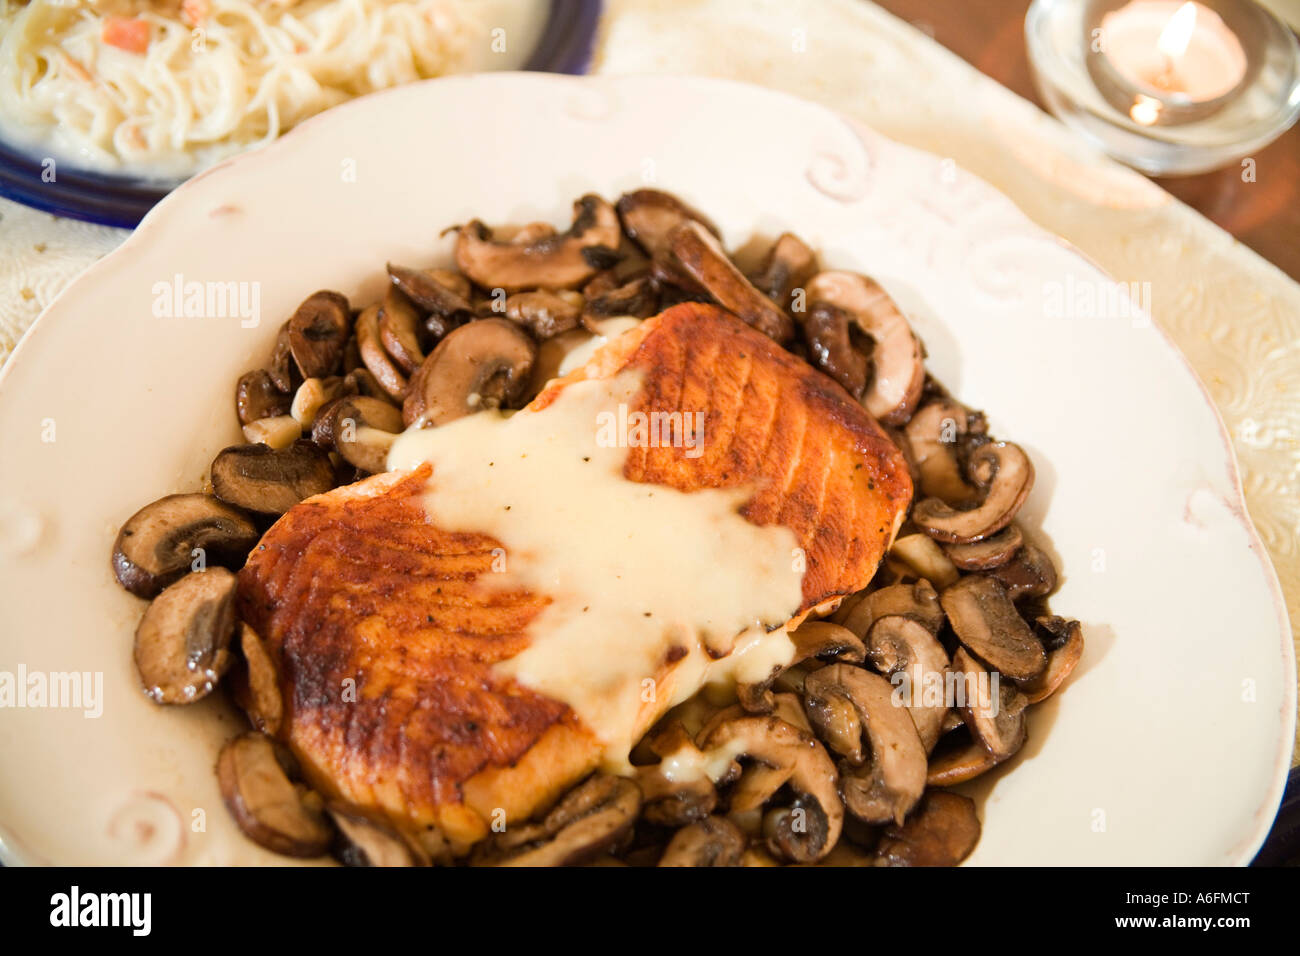 Seven Fishes Christmas Eve.Feast Of The Seven Fishes Italian Christmas Eve Dinner Pasta With